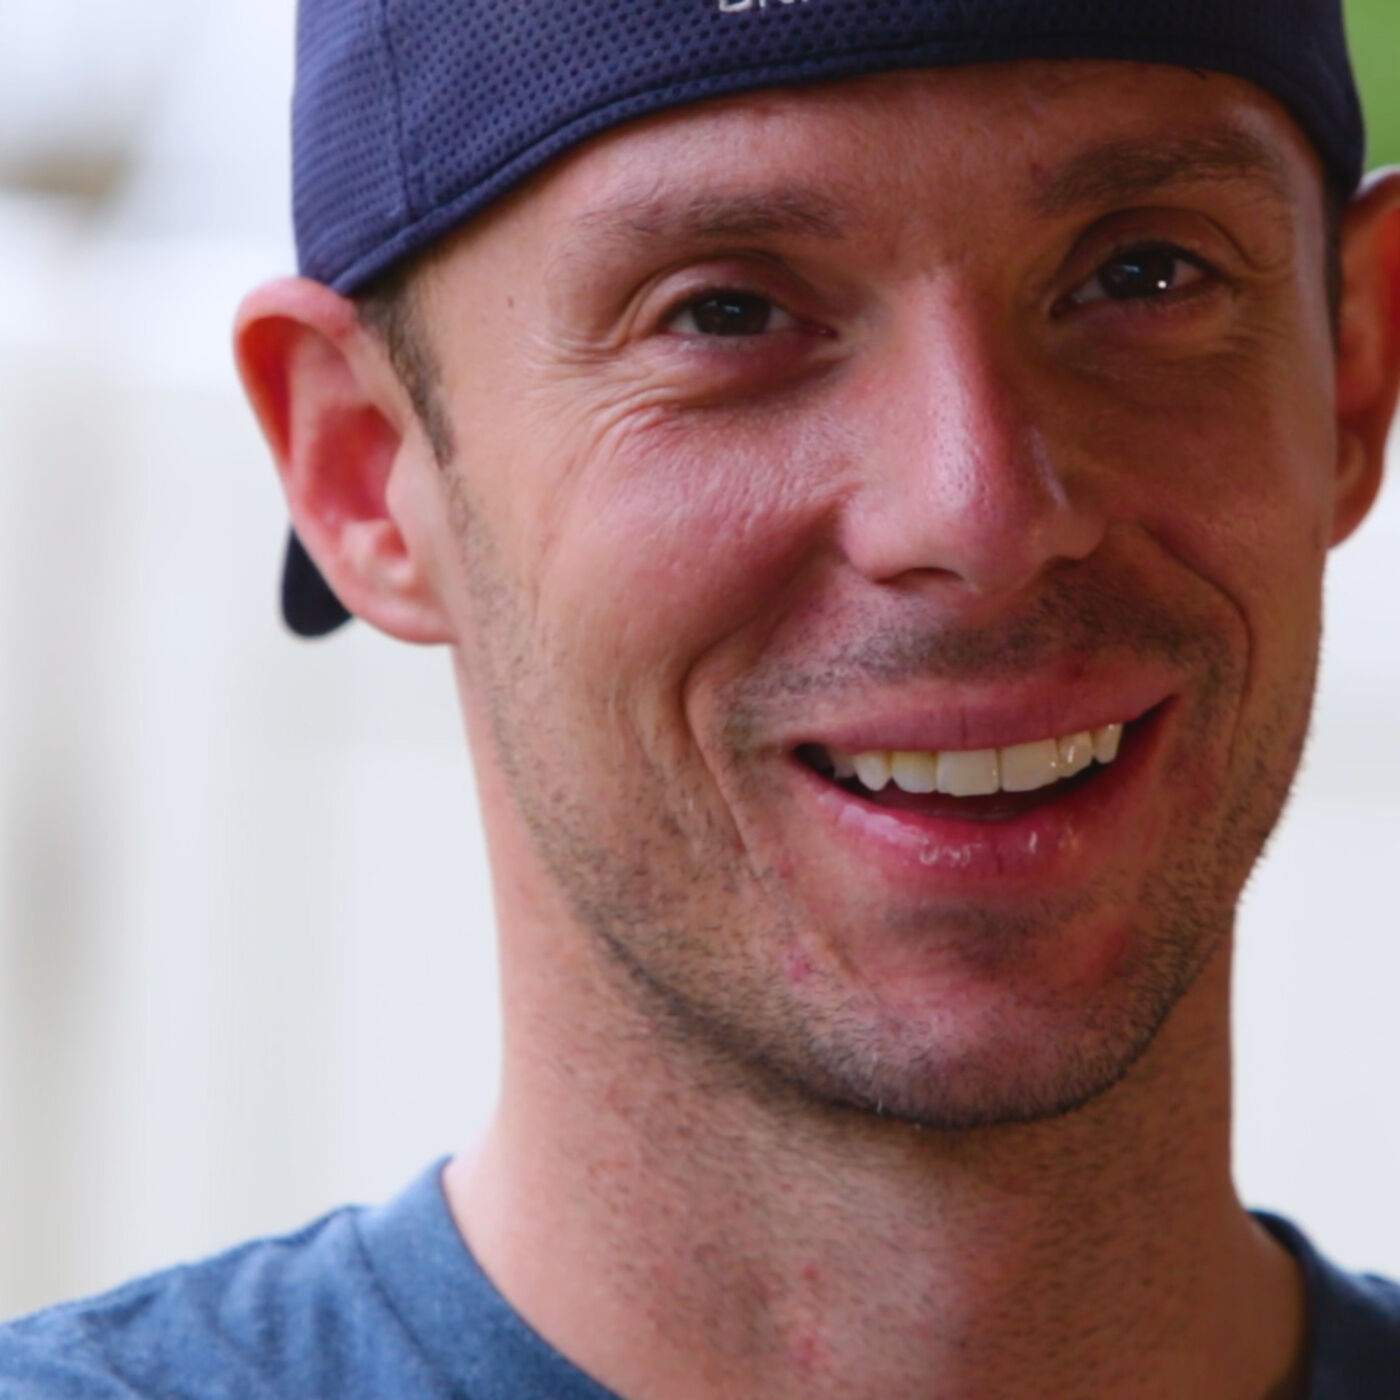 Ep 019 - Matt Berkey on learning, altruism, self-trust and other approaches to life